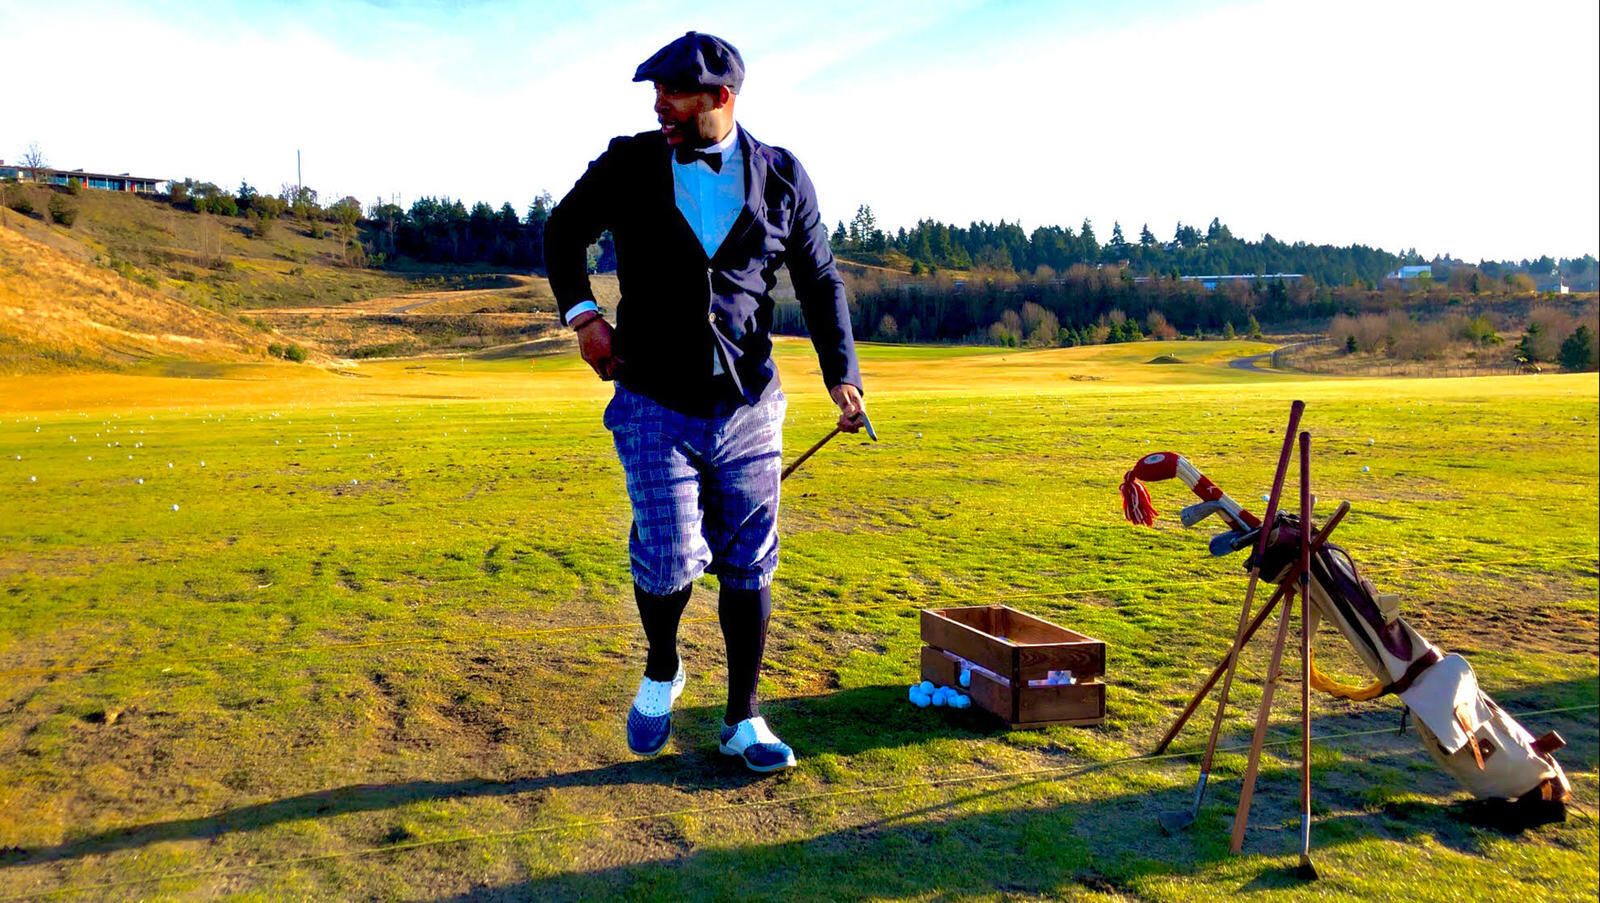 168: Durel 'Billy Bogey' brings passion, history to the game